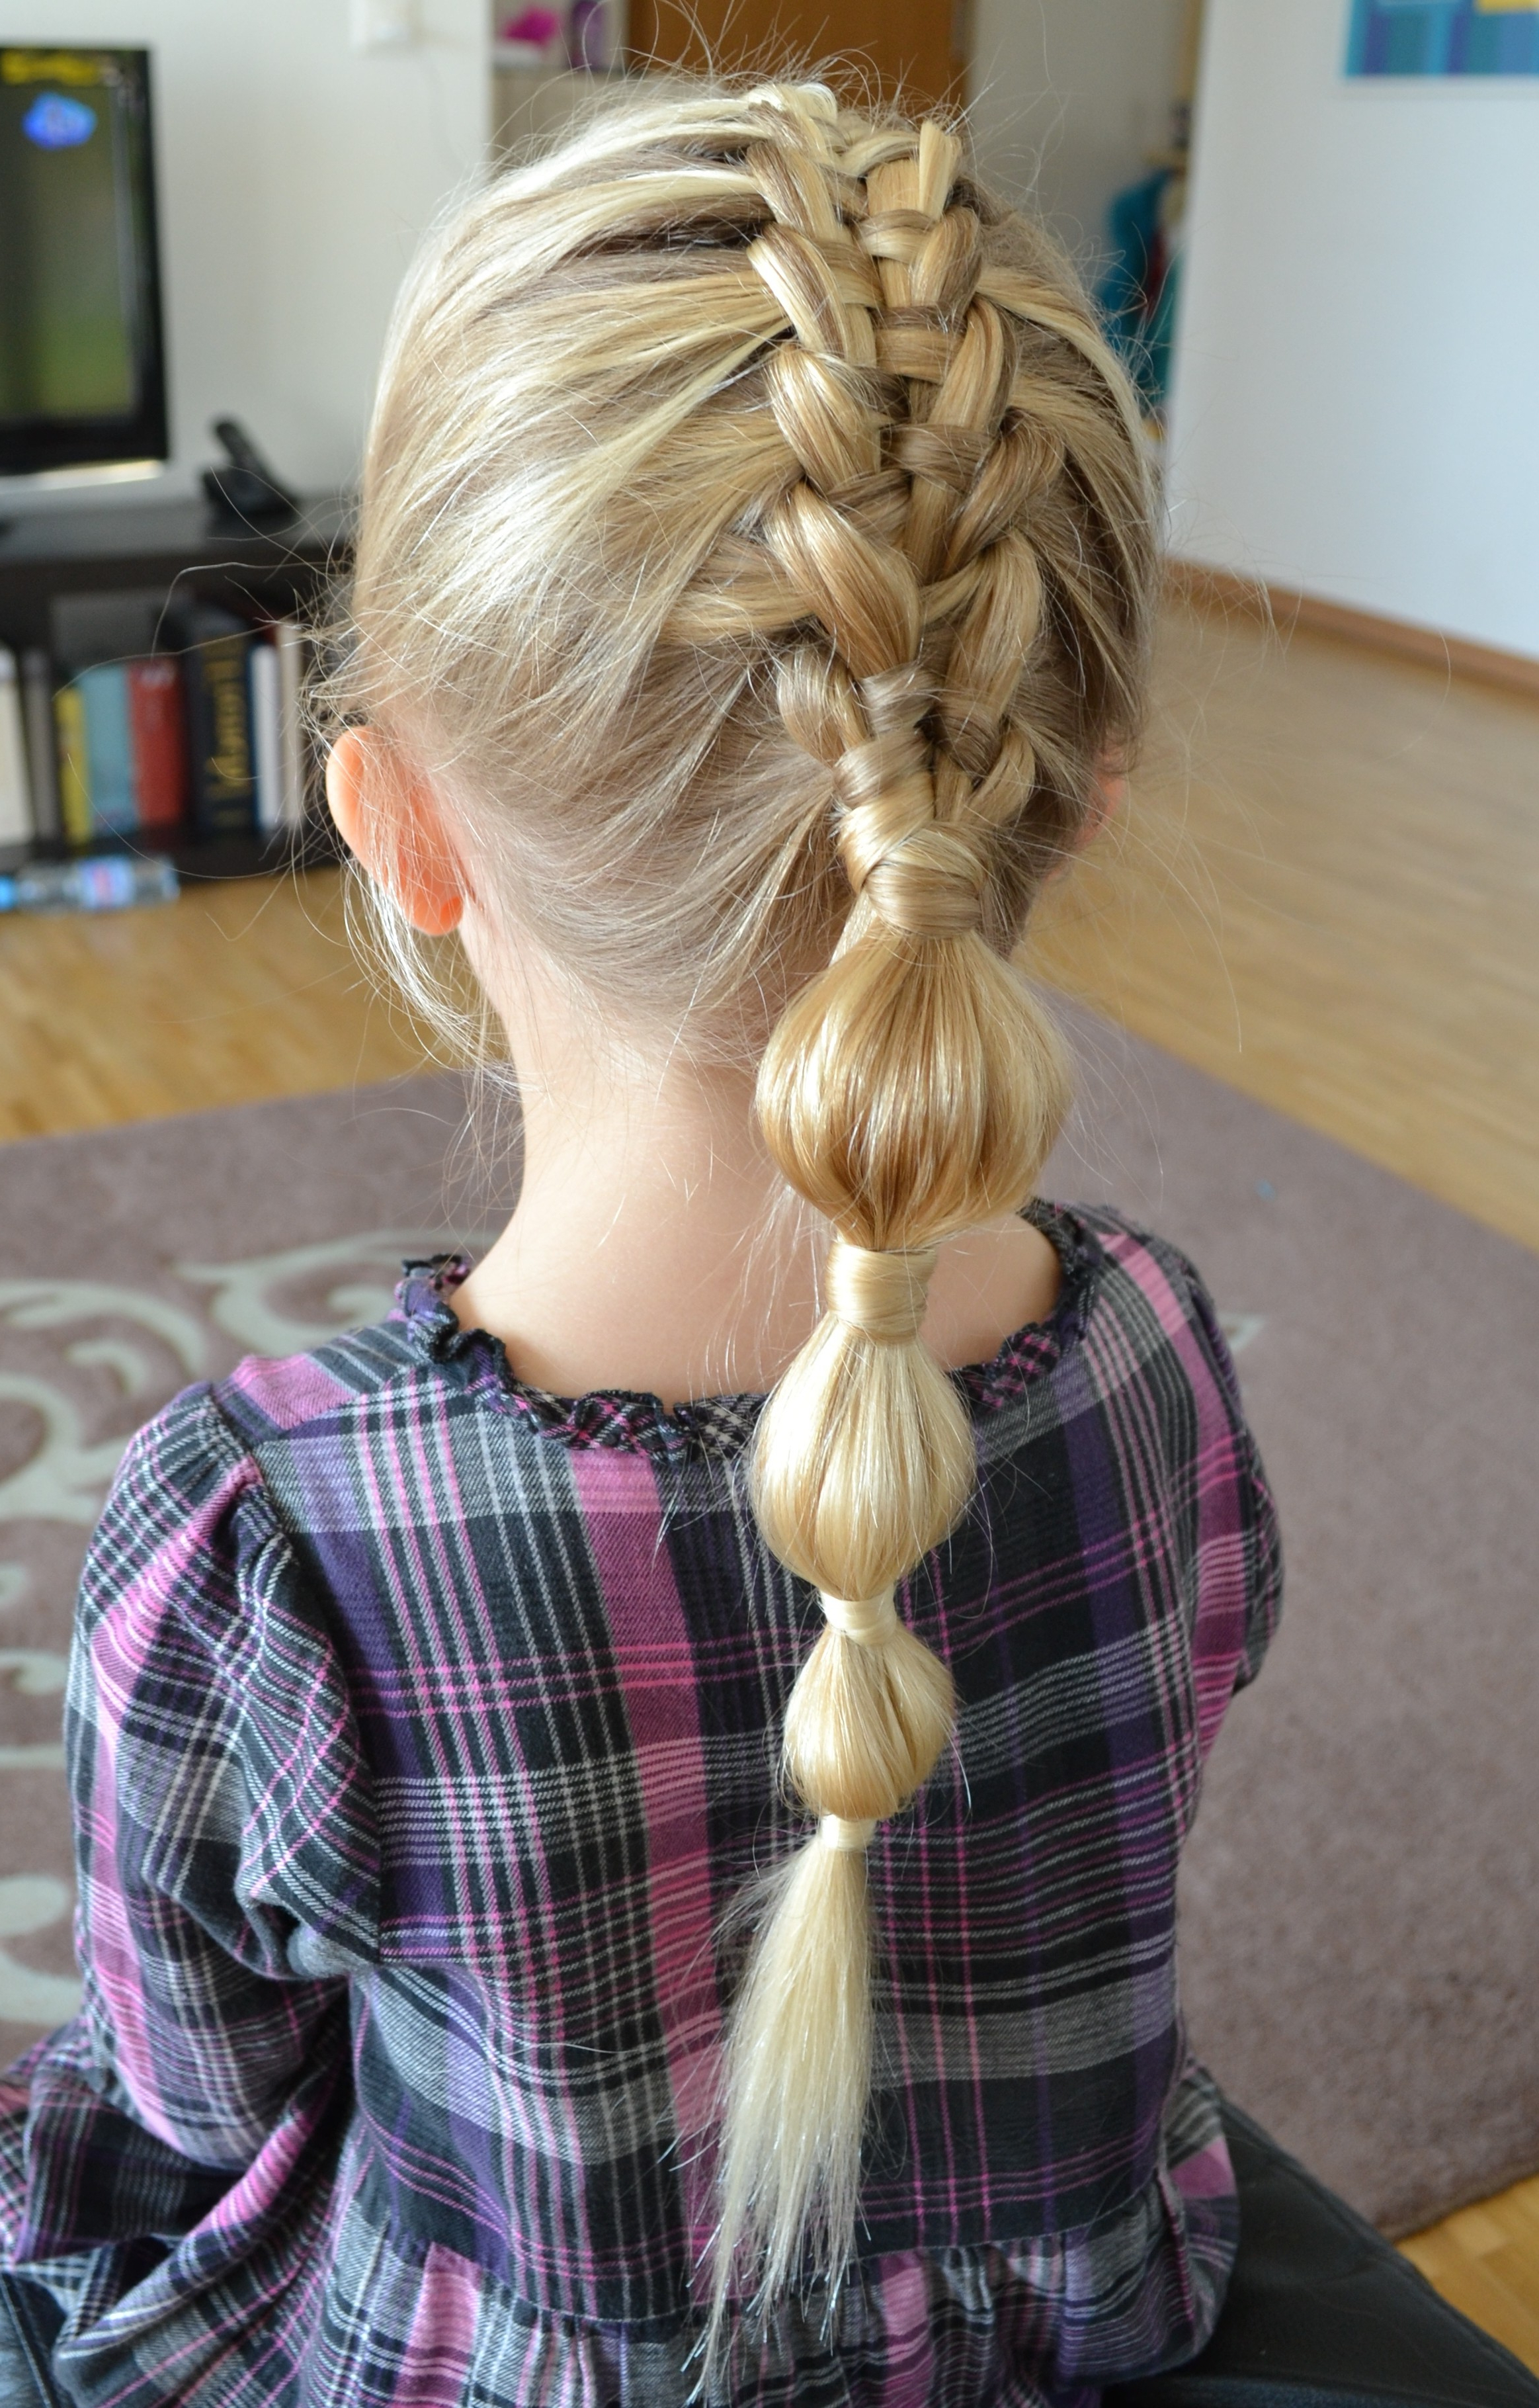 Widely Used Braided Bubble Ponytail Hairstyles For Ponytails (View 19 of 20)